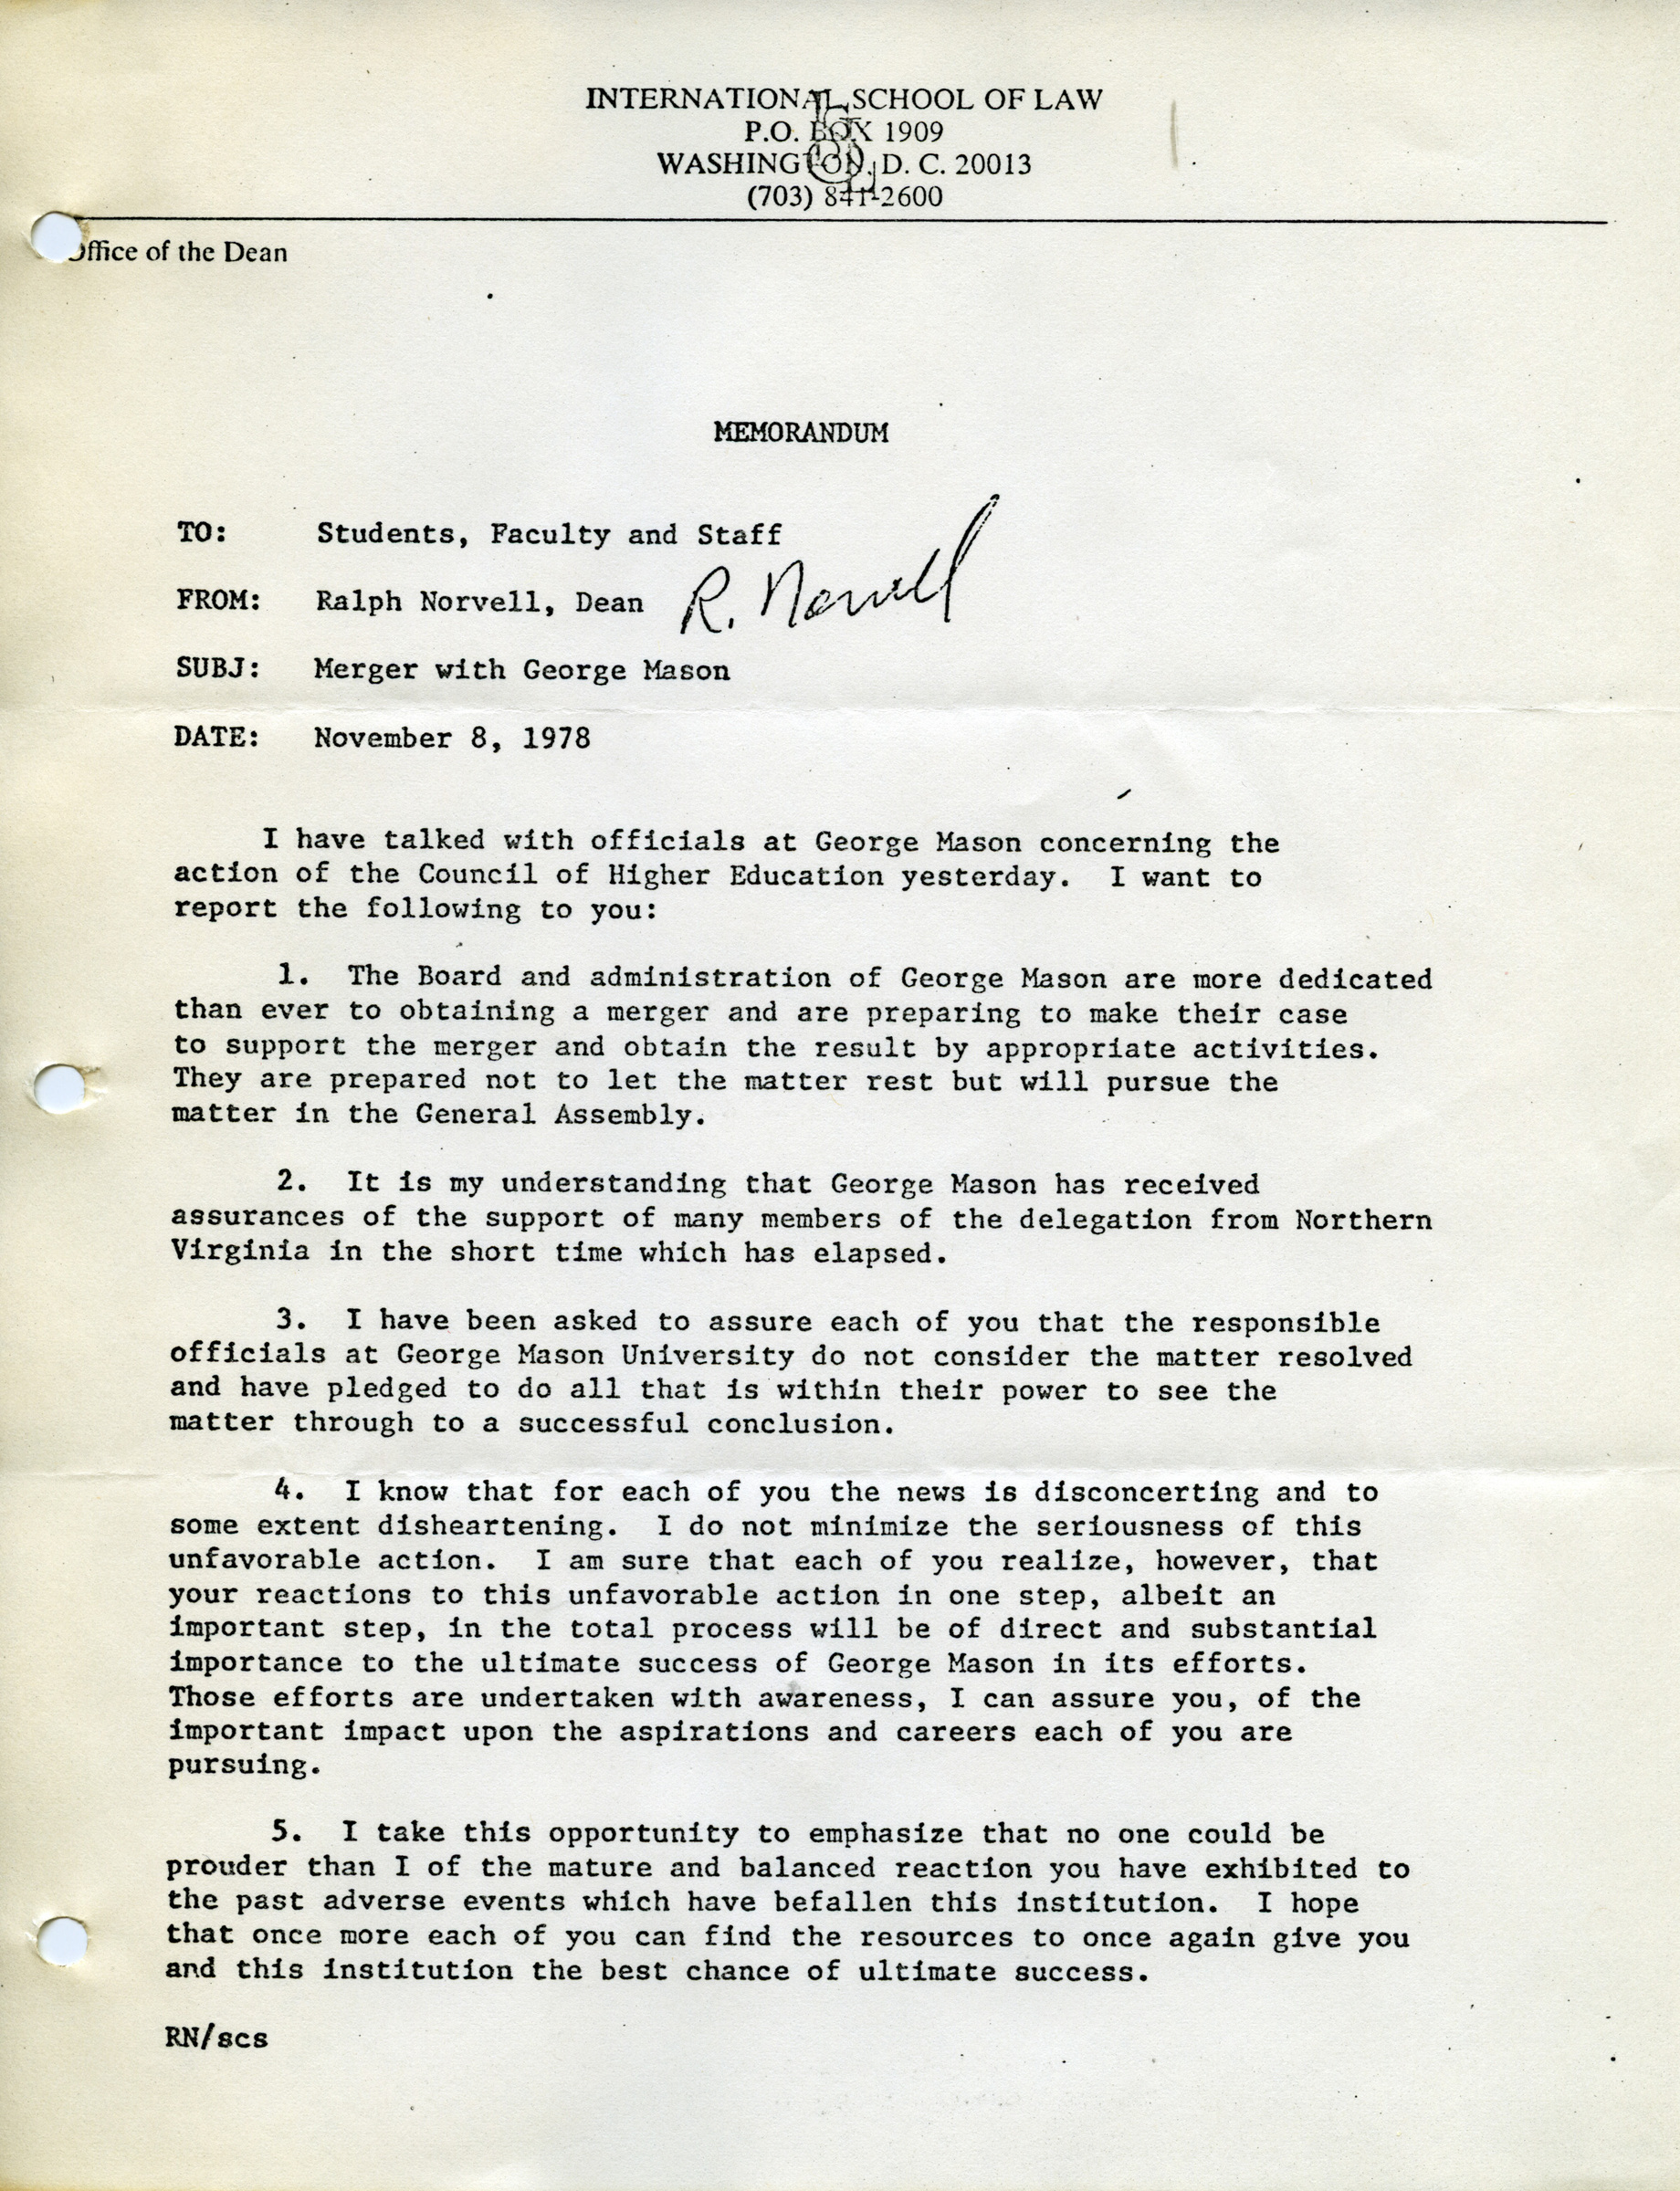 To students, faculty, and staff, from Ralph Norvell, Dean, November 8, 1978